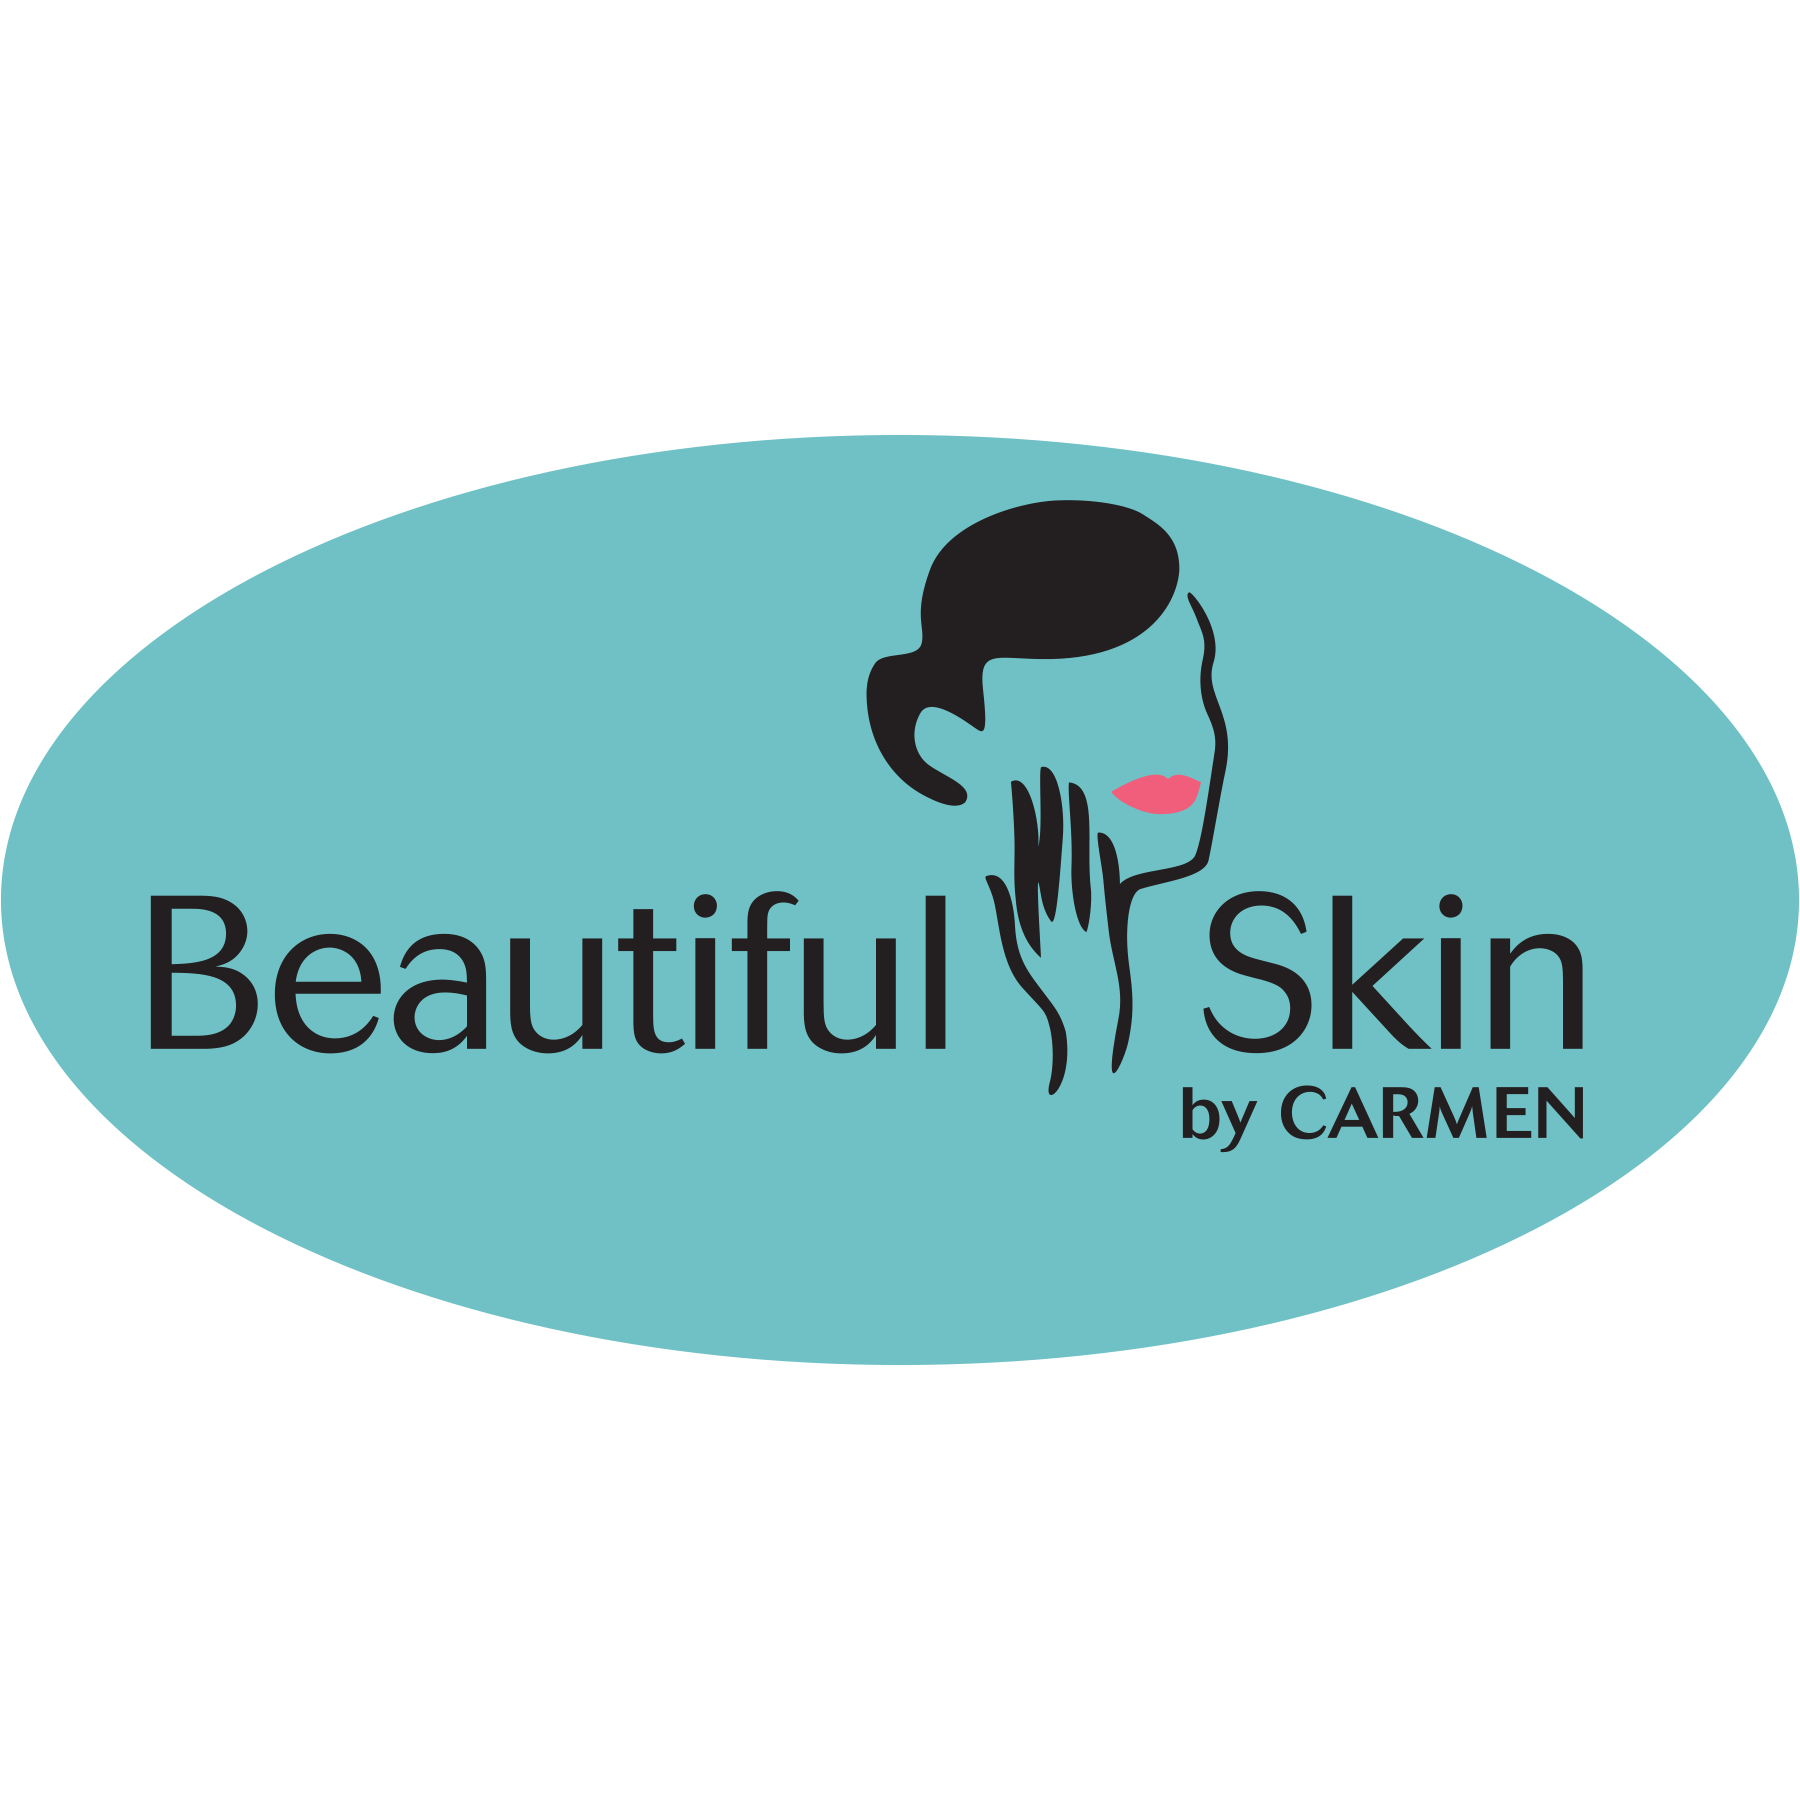 image of the Beautiful Skin by Carmen